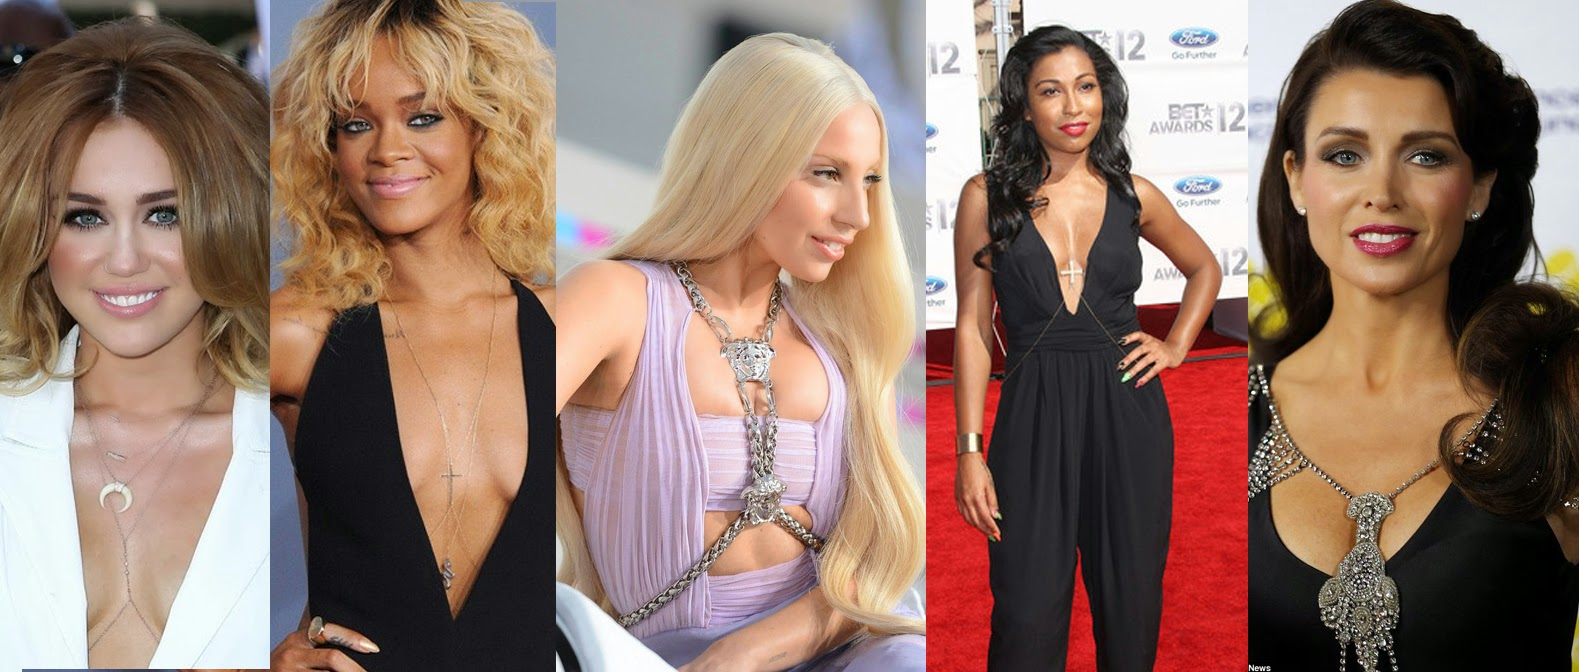 Body Chain: The Famous Accessory